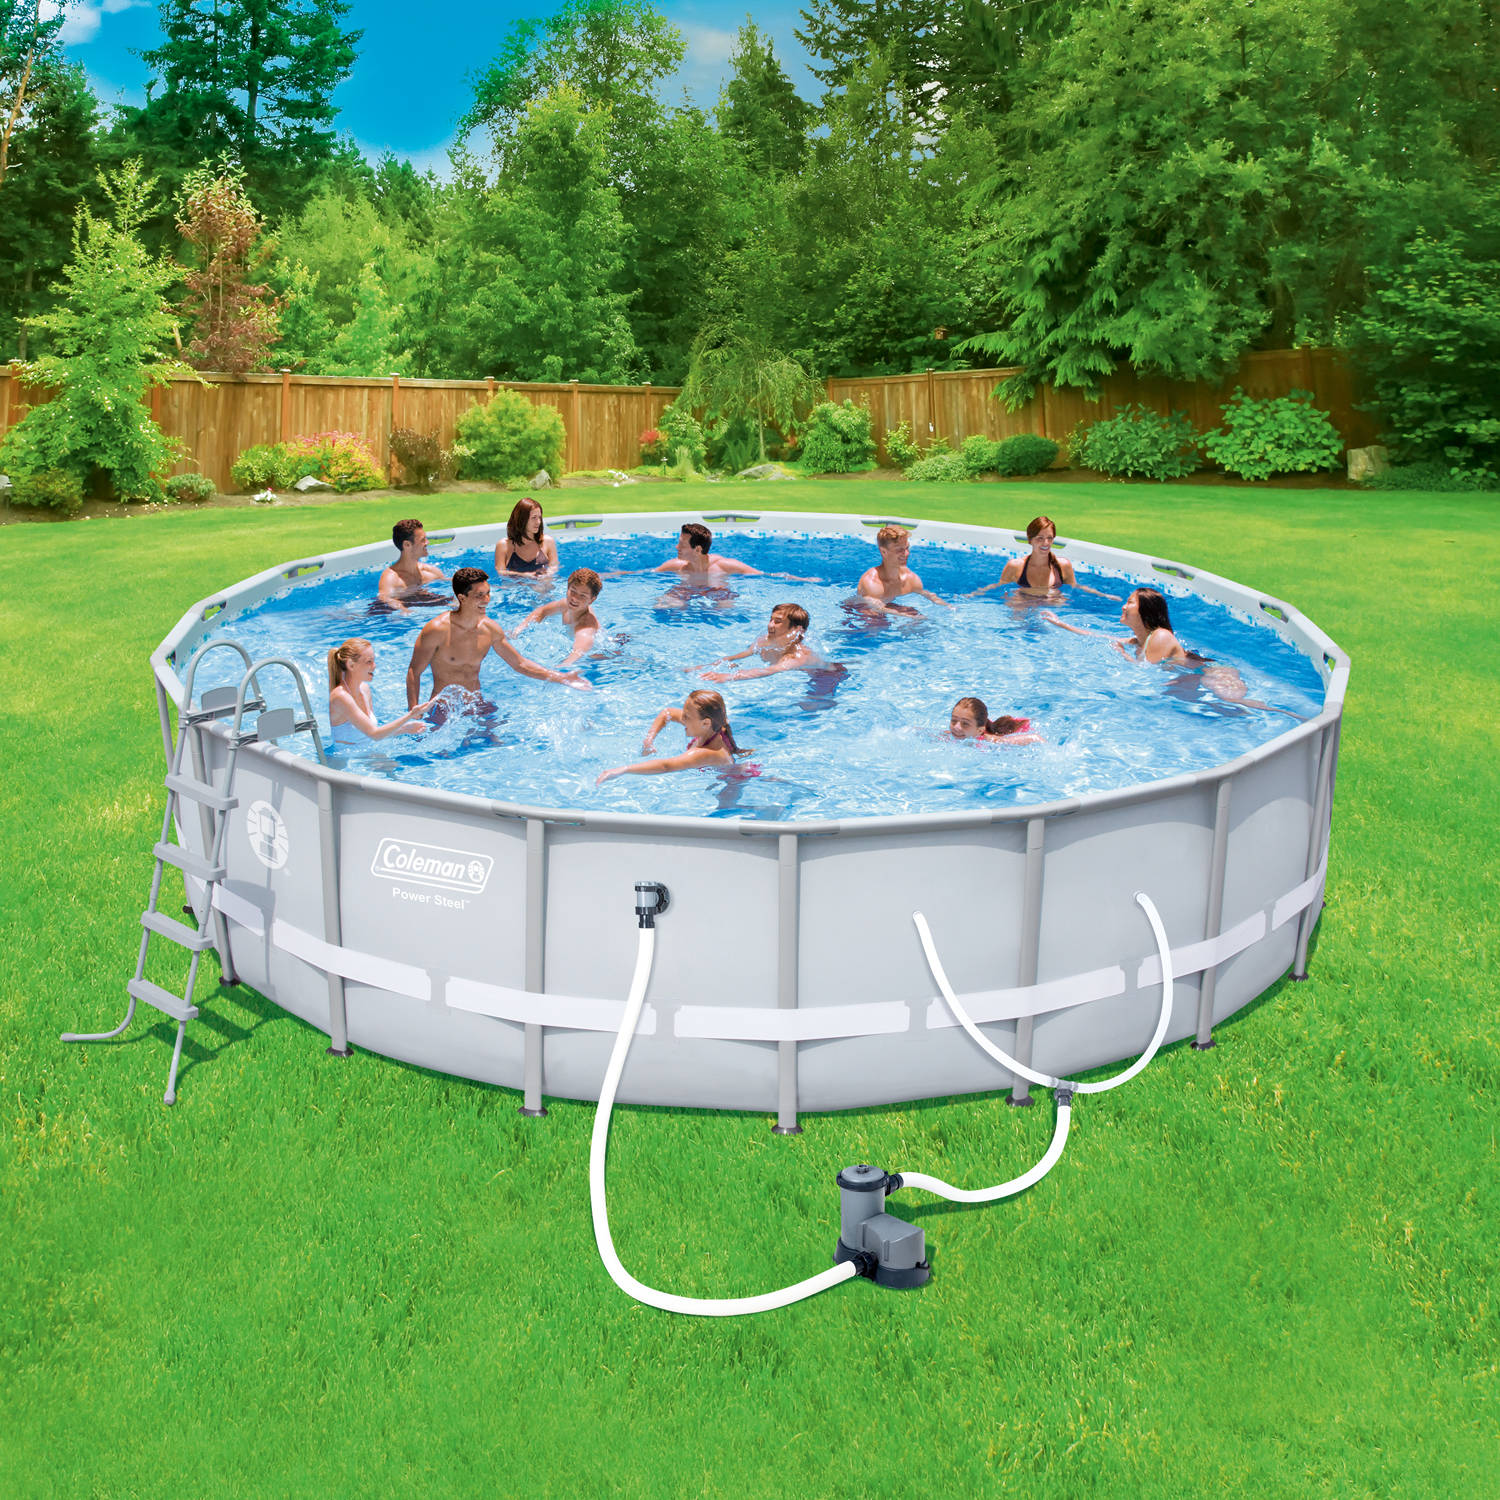 "Coleman Power Steel 18' x 48"" Frame Swimming Pool Set by Bestway Inflatables & Material Corp."